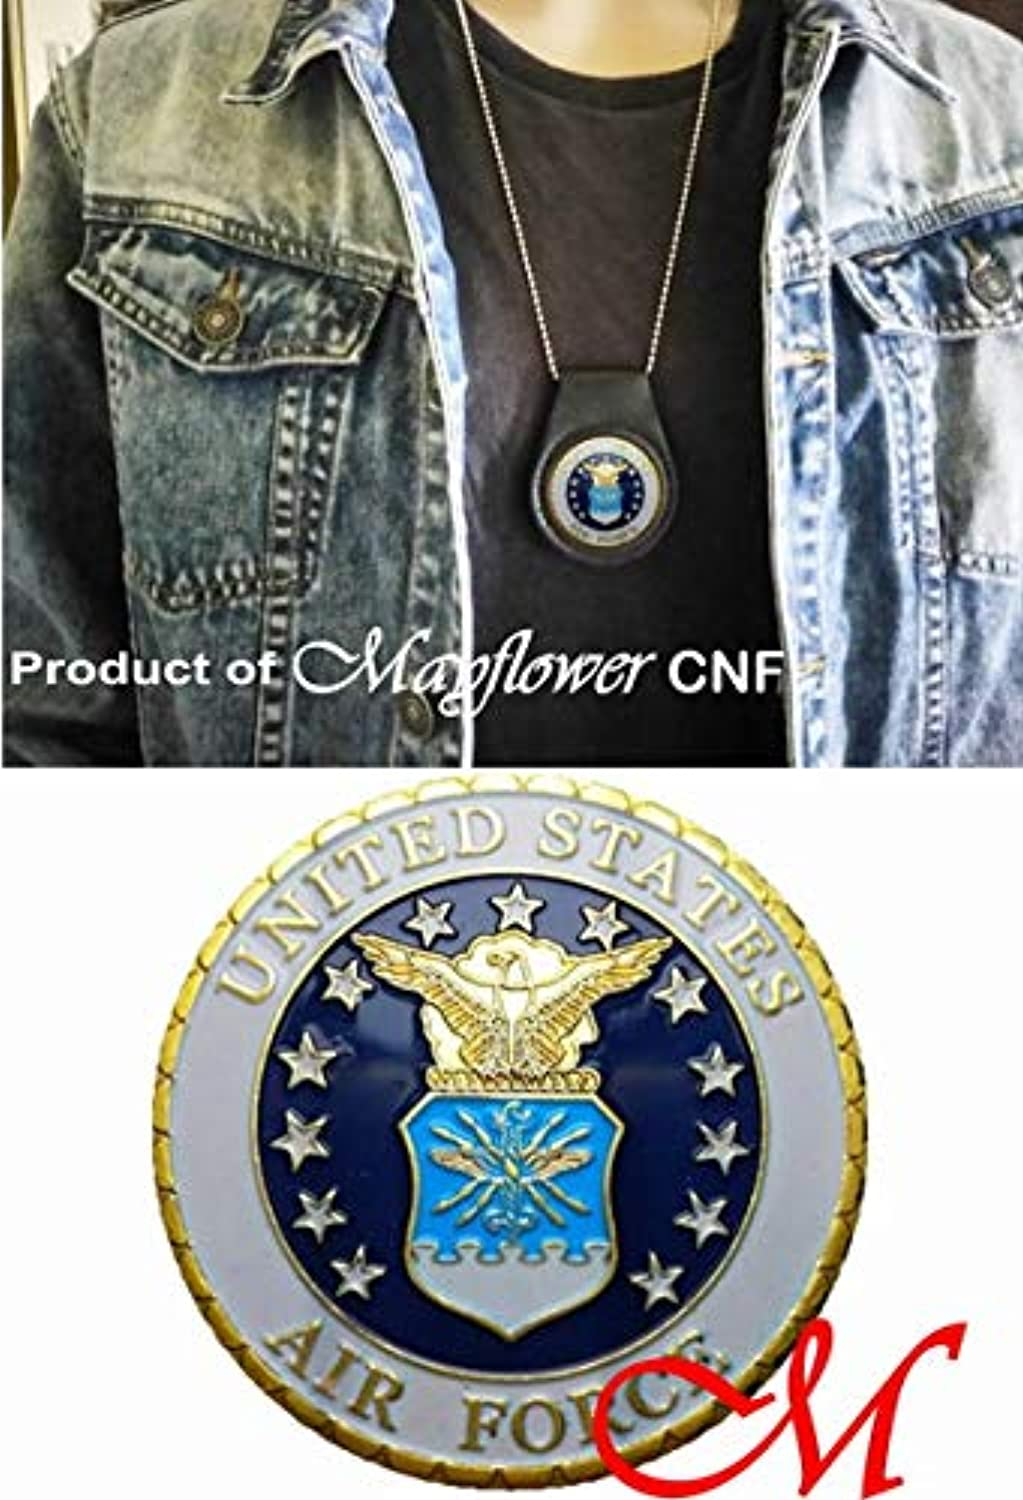 Mayflower CNFコイン&レザーホルダー – 米国空軍ゴールドc-130 Challenge Coin Rare – We The People of the United States、Salute to Our Heroes、Fight For Freedom 。